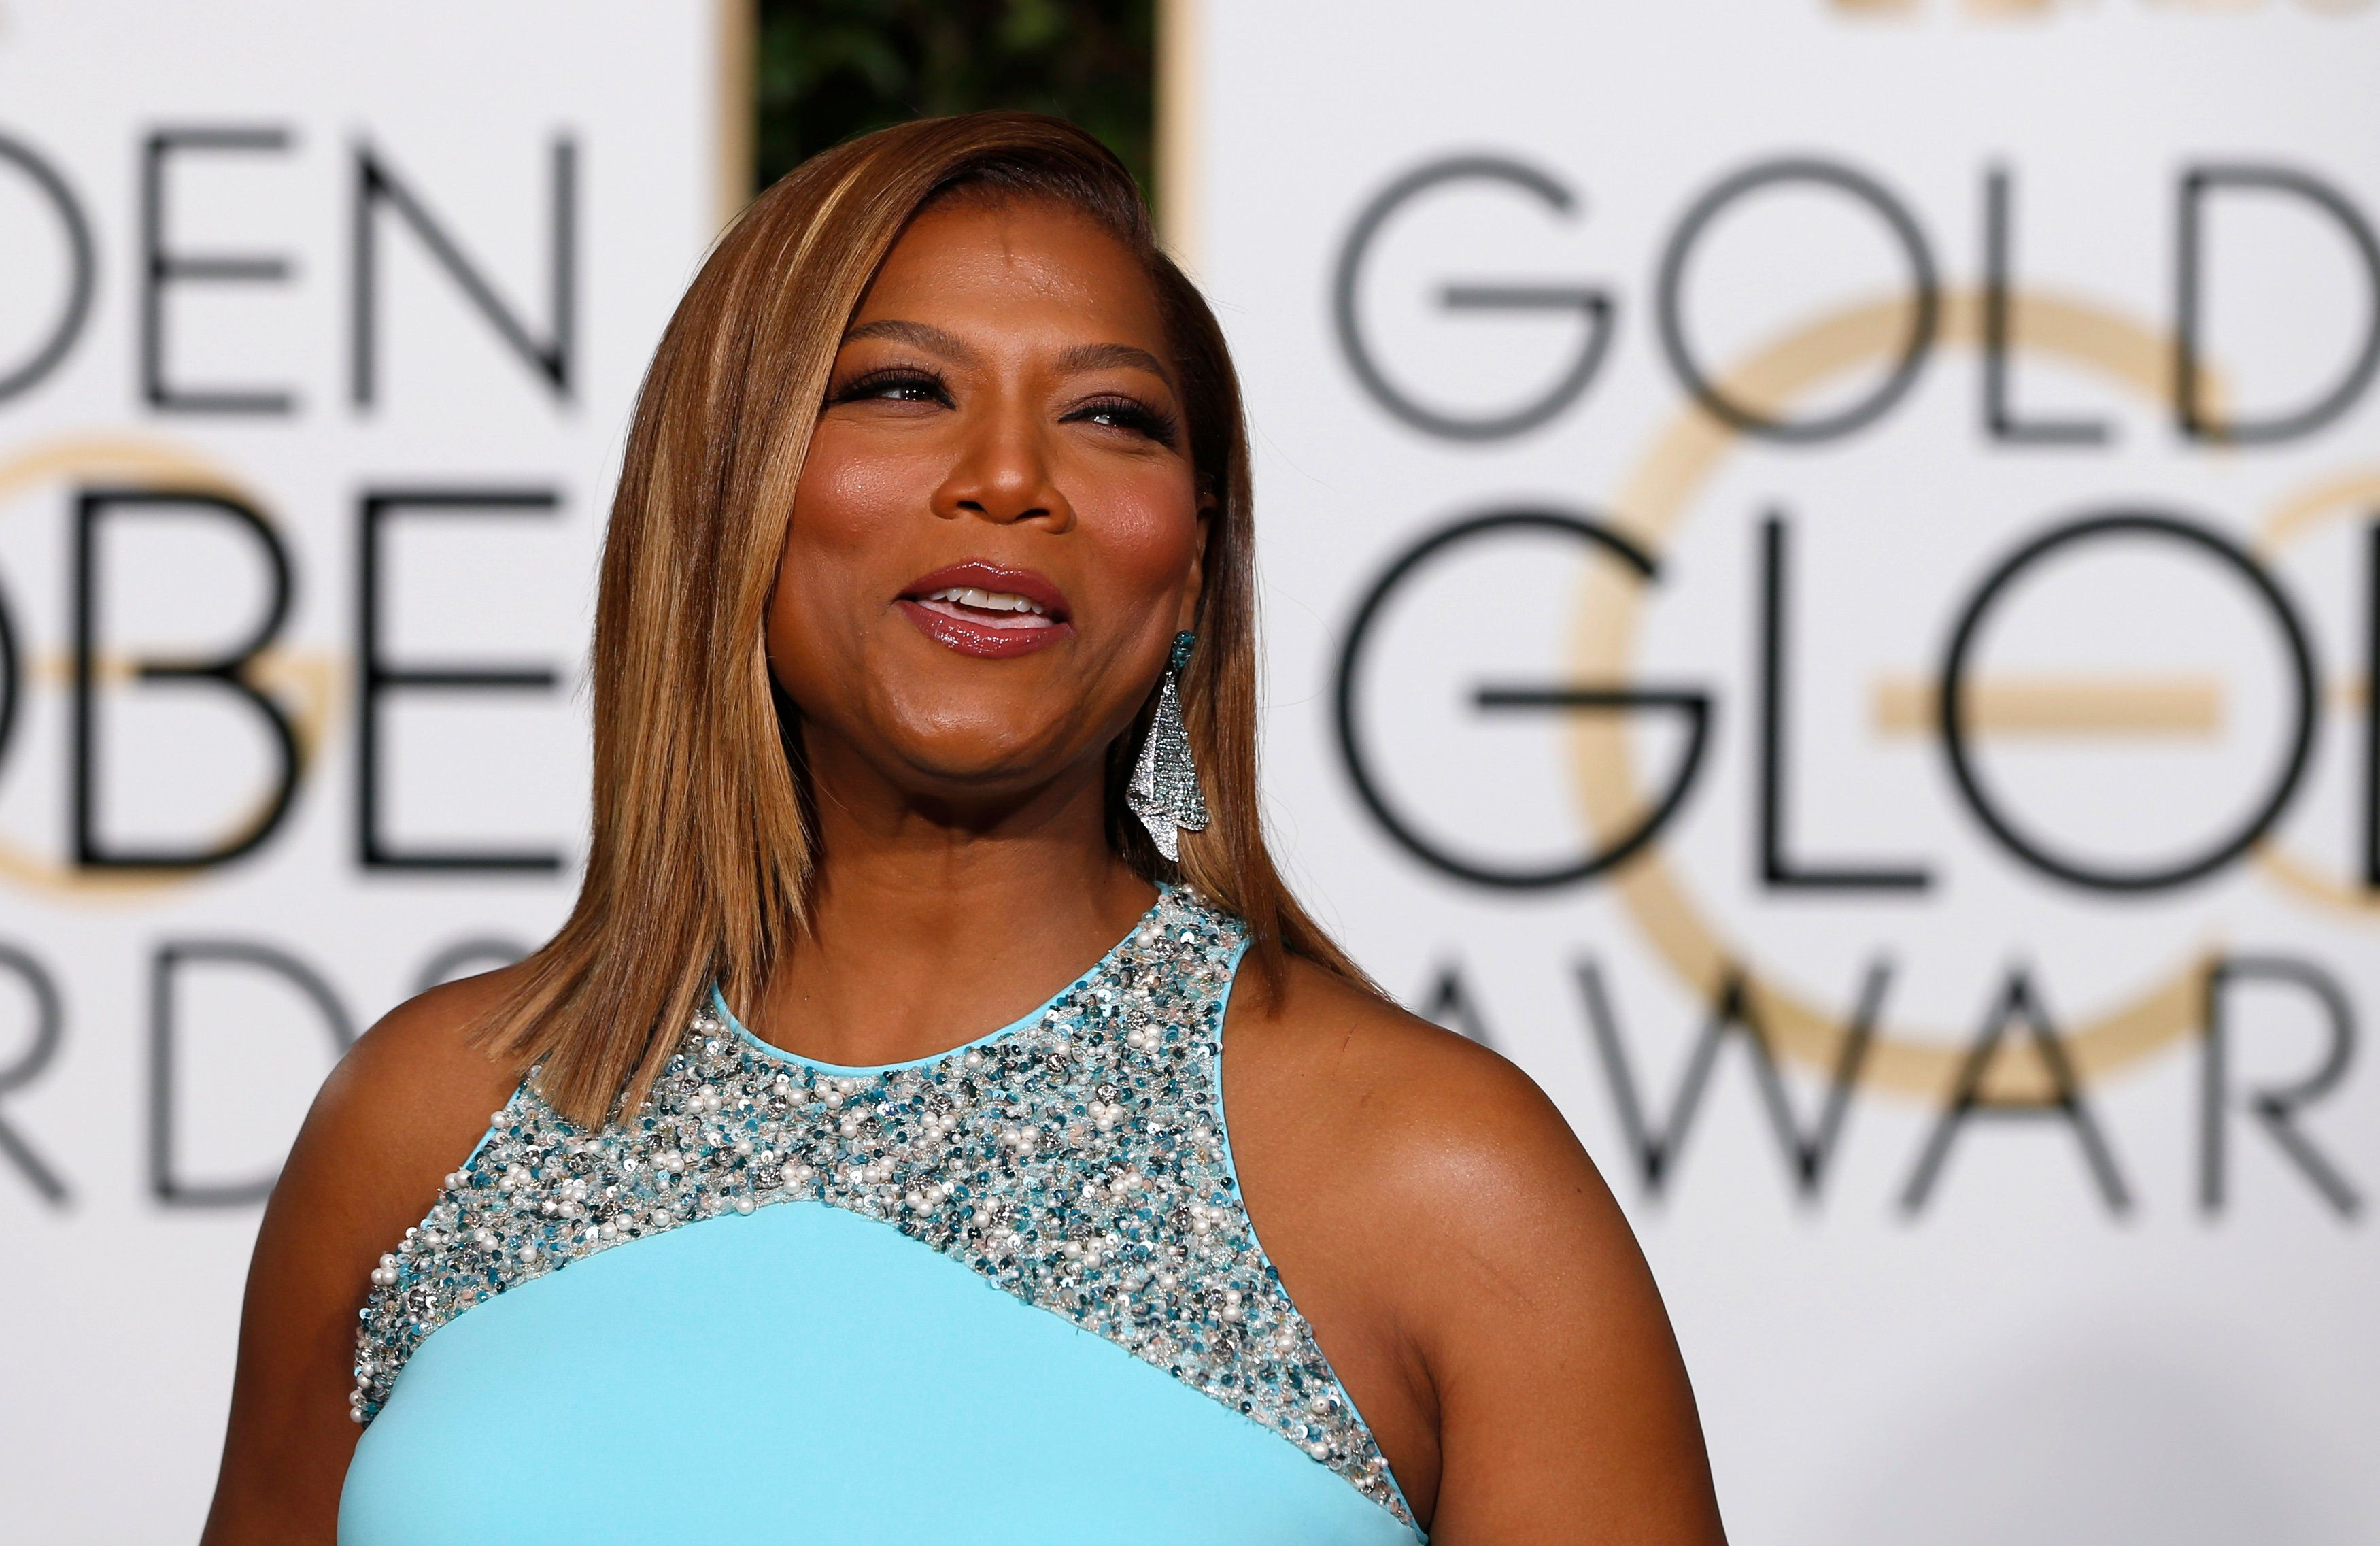 Queen Latifah says she aimed to